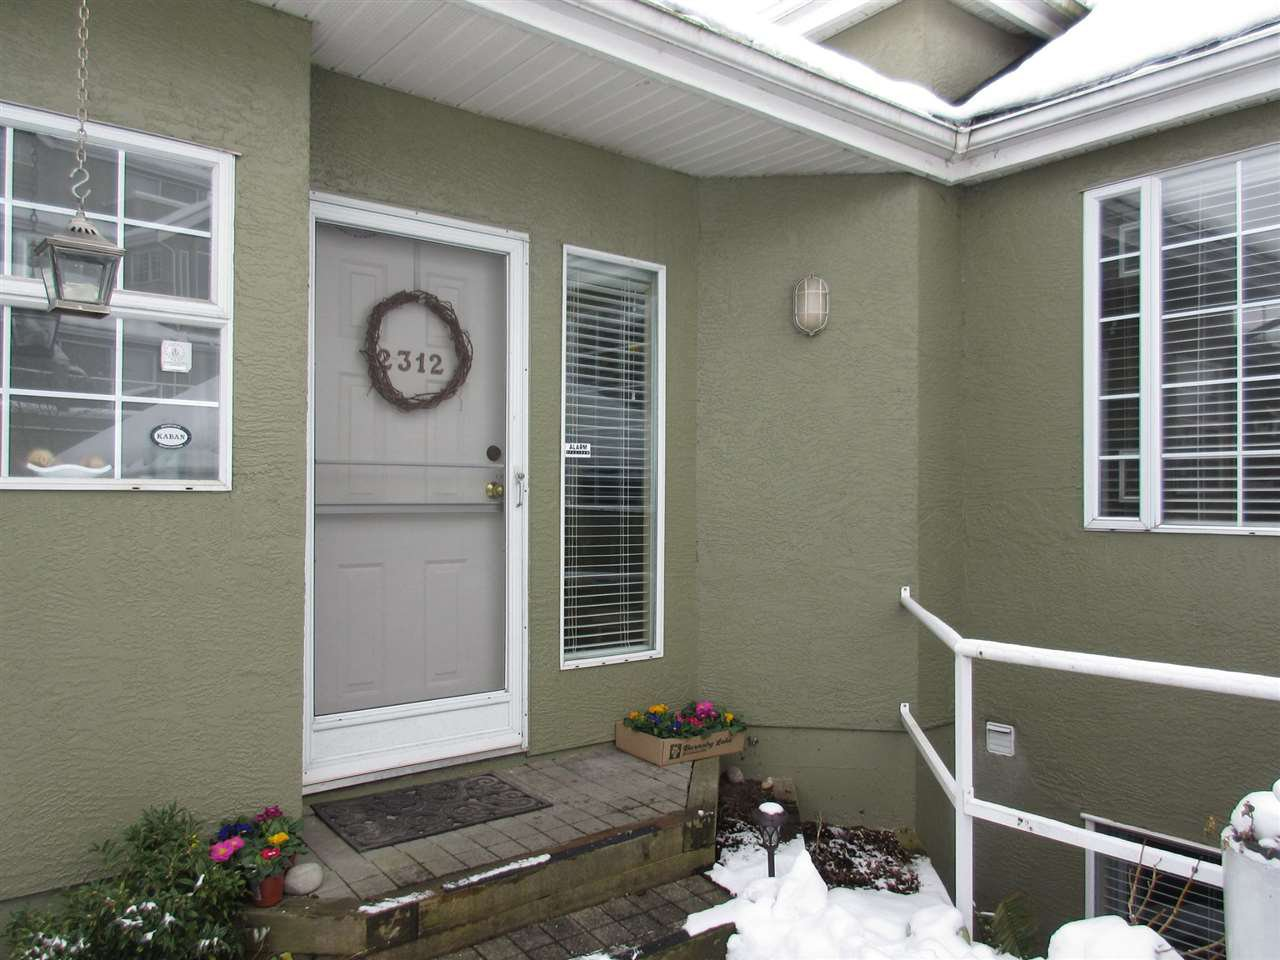 Main Photo: 2312 QUAYSIDE COURT in Vancouver: Fraserview VE Townhouse for sale (Vancouver East)  : MLS®# R2137653